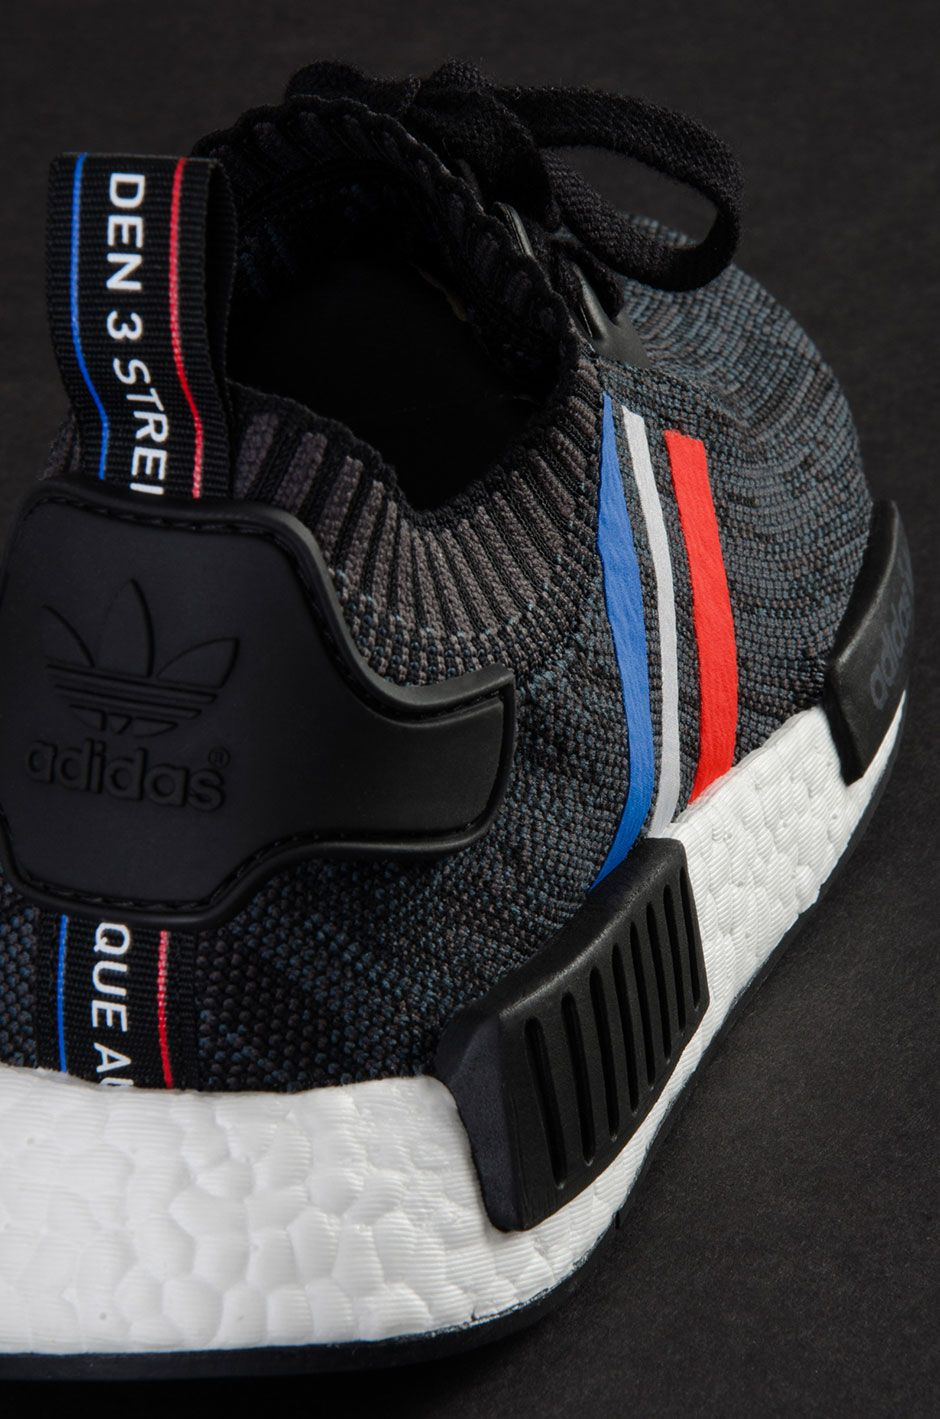 adidas NMD R1 Primeknit Tricolor Pack   SneakerNews com is part of Adidas nmd r1 primeknit - The adidas NMD R1 TriColor Pack will release this November 2016 featuring 2 Primeknit constructions  More adidas NMD release date info here